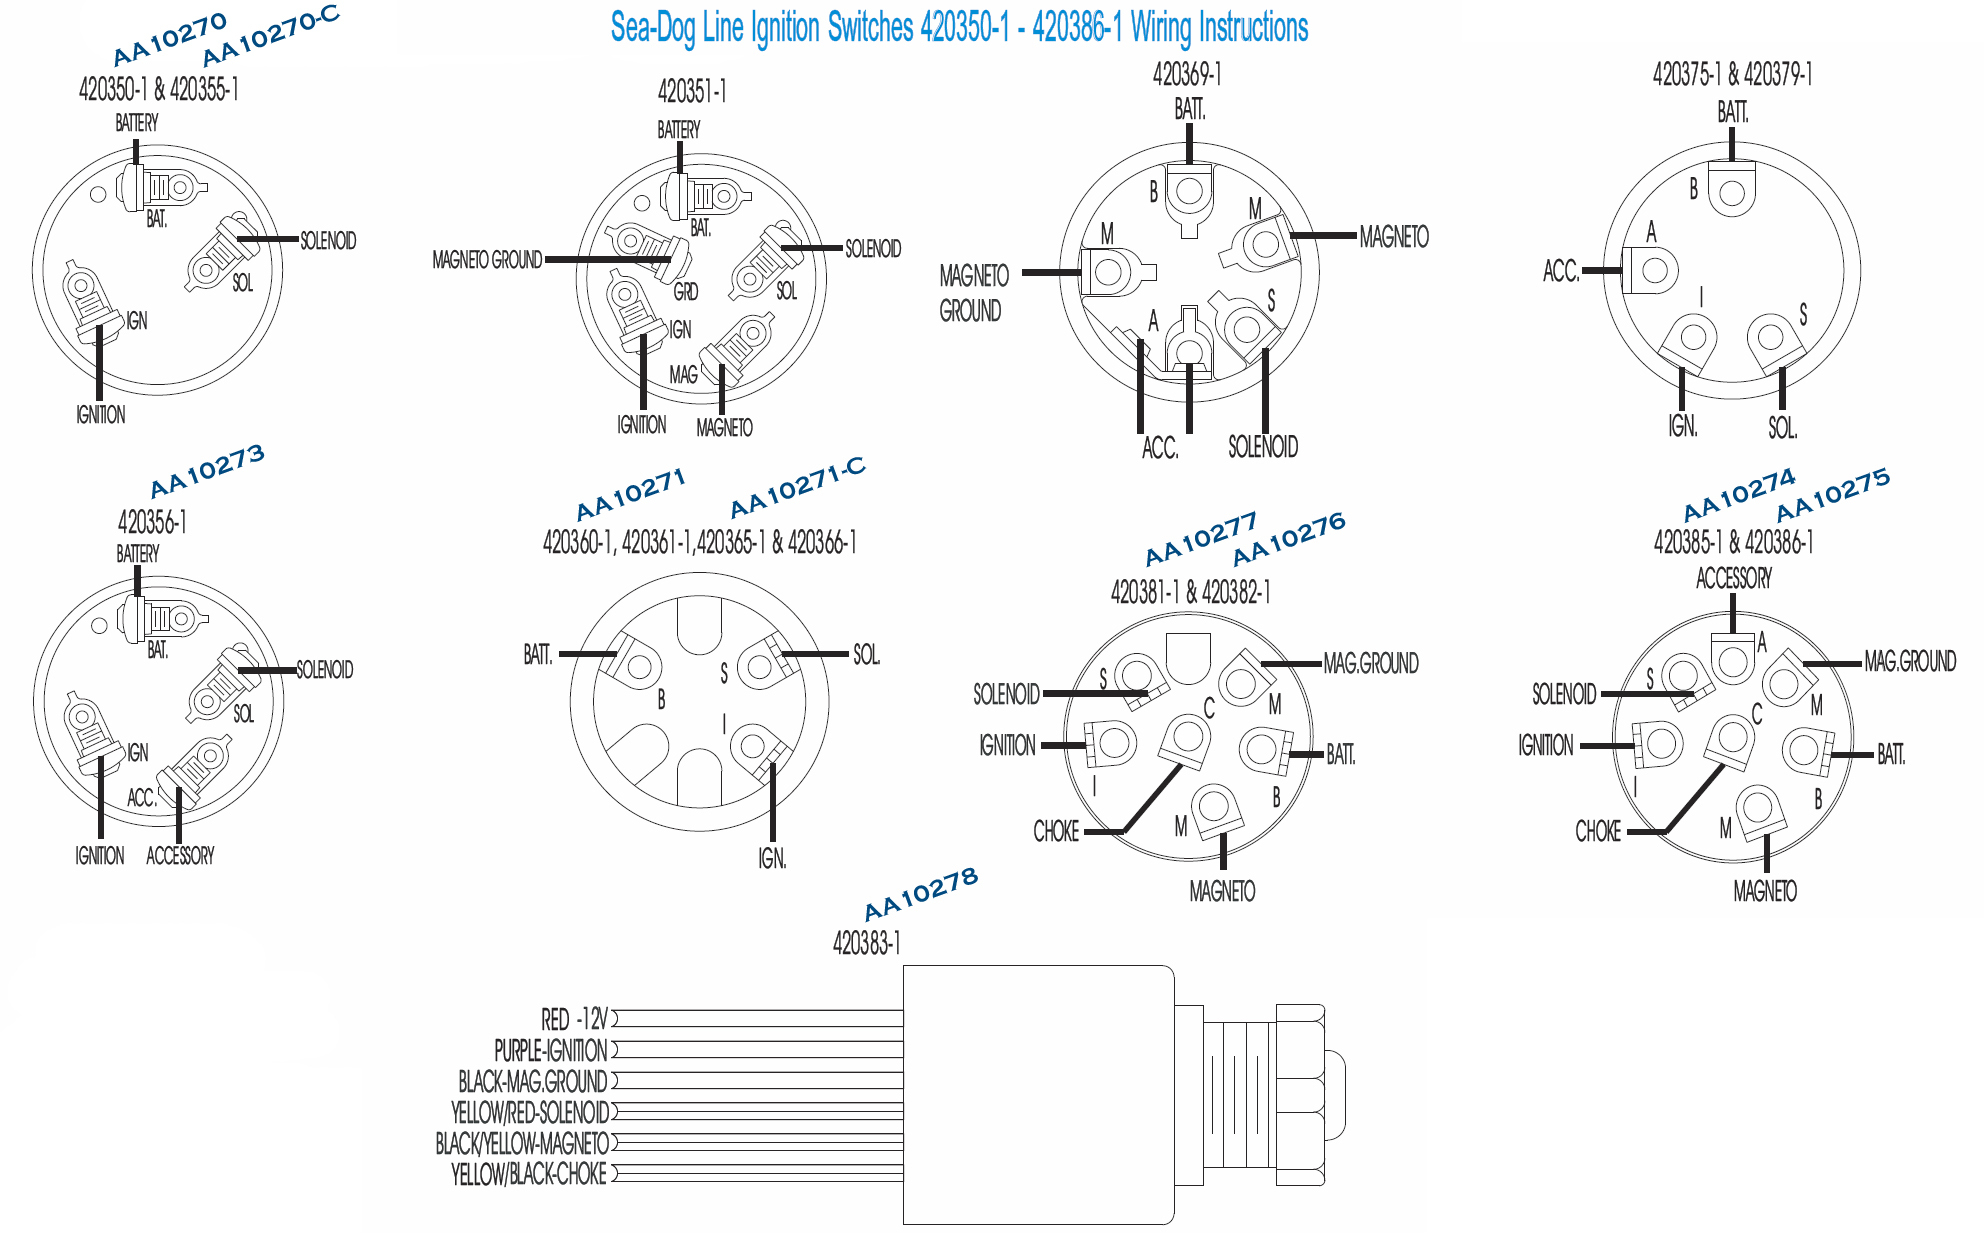 7 Pole Ignition Switch Wiring - Free Wiring Diagram For You • - 7 Terminal Ignition Switch Wiring Diagram